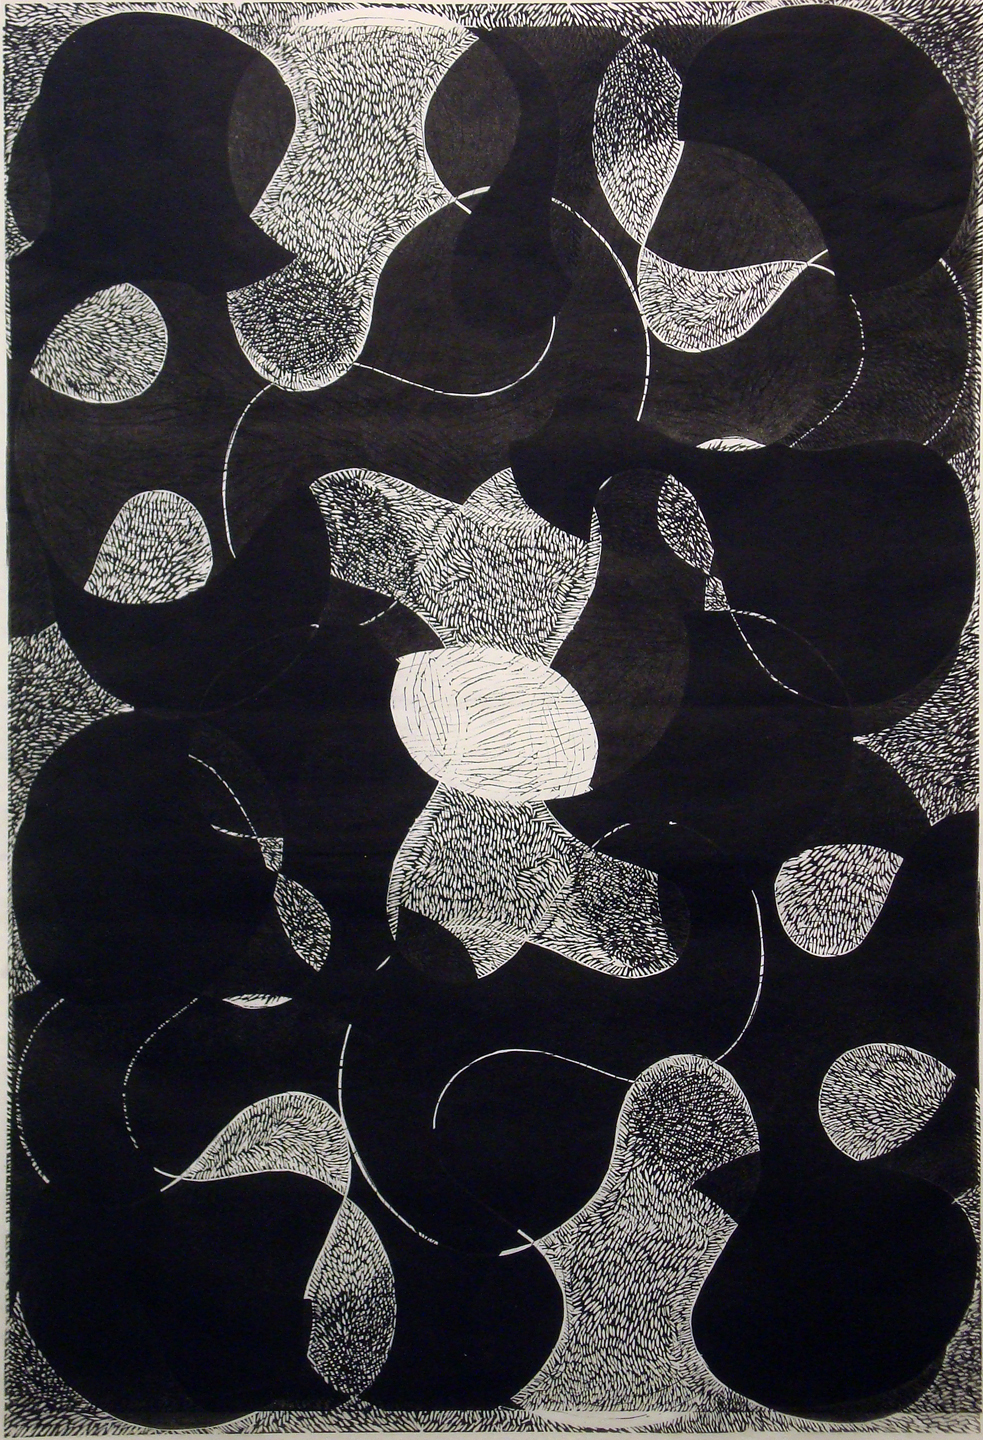 "Prop Series: Dark Night Flip, blockprint, 36""x24"""", 2013"